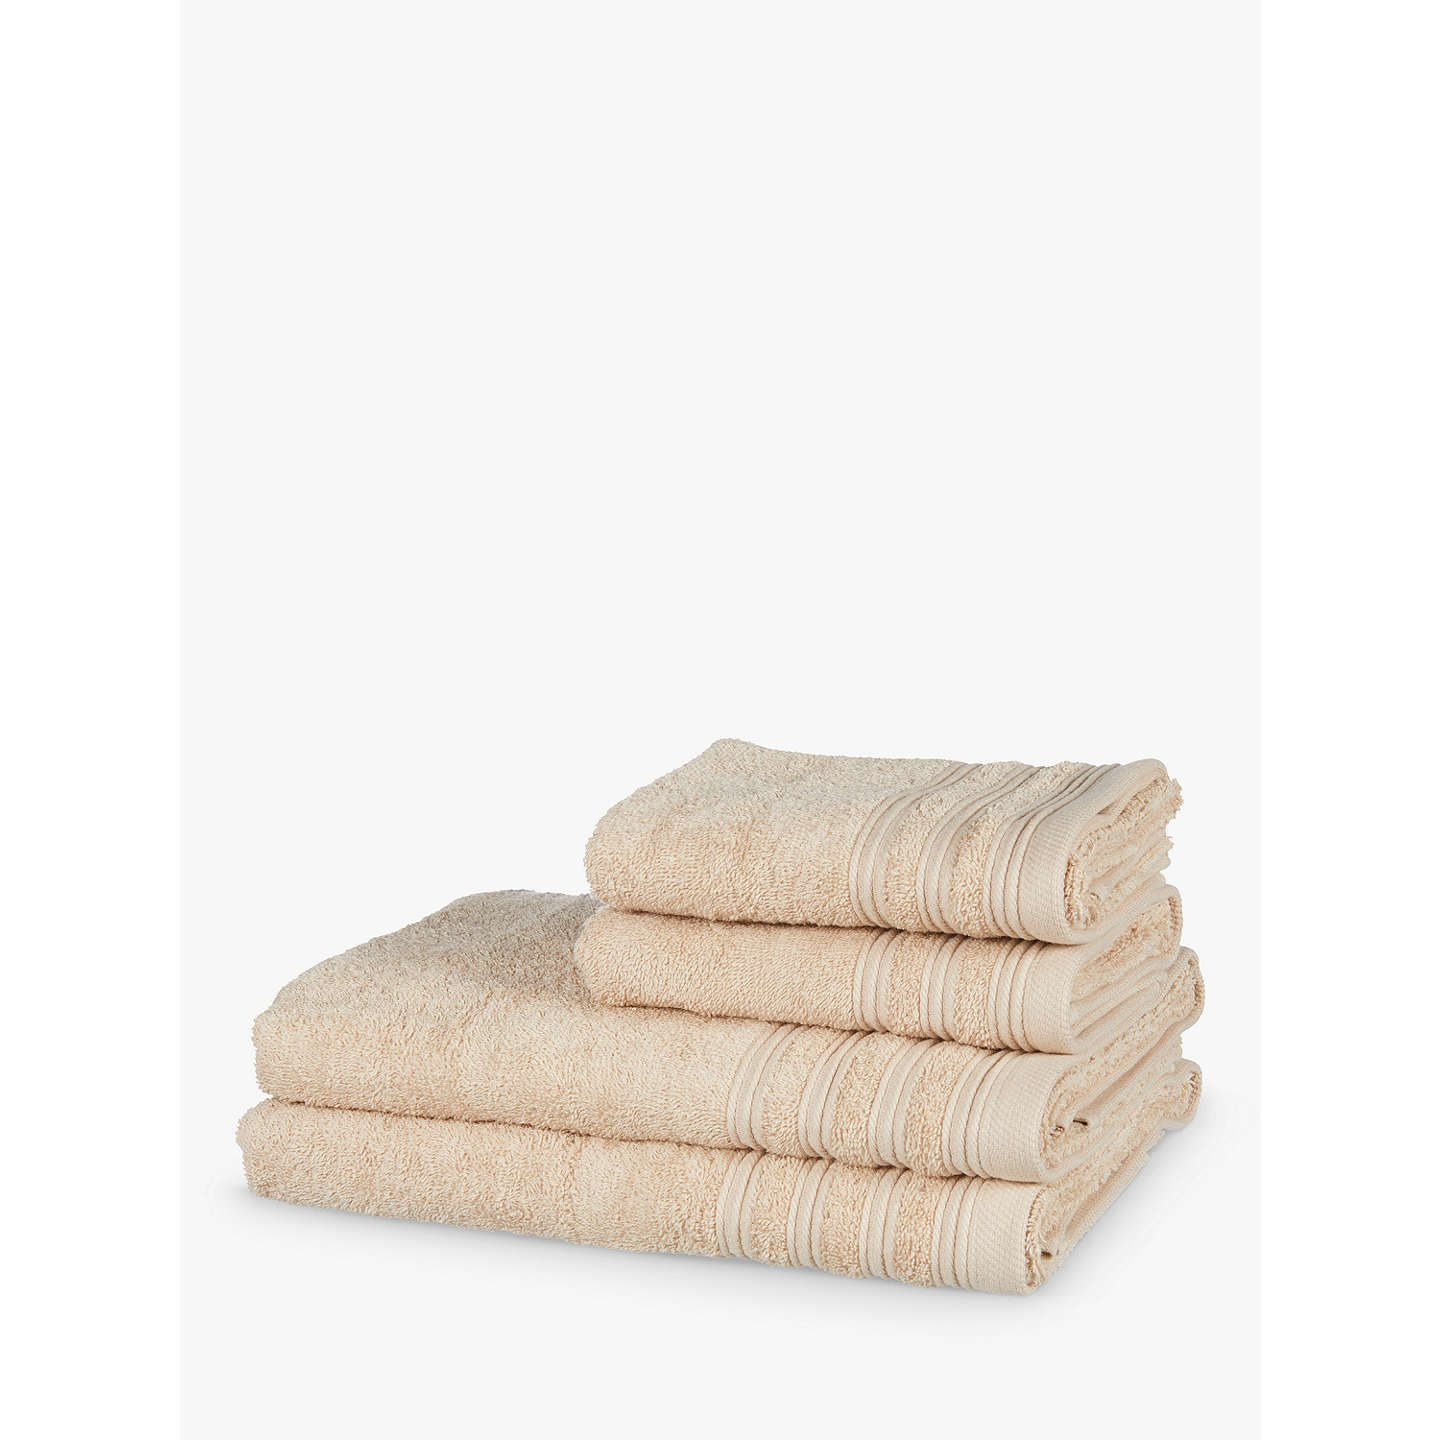 BuyJohn Lewis 4 Piece Towel Bale, Pebble Online at johnlewis.com